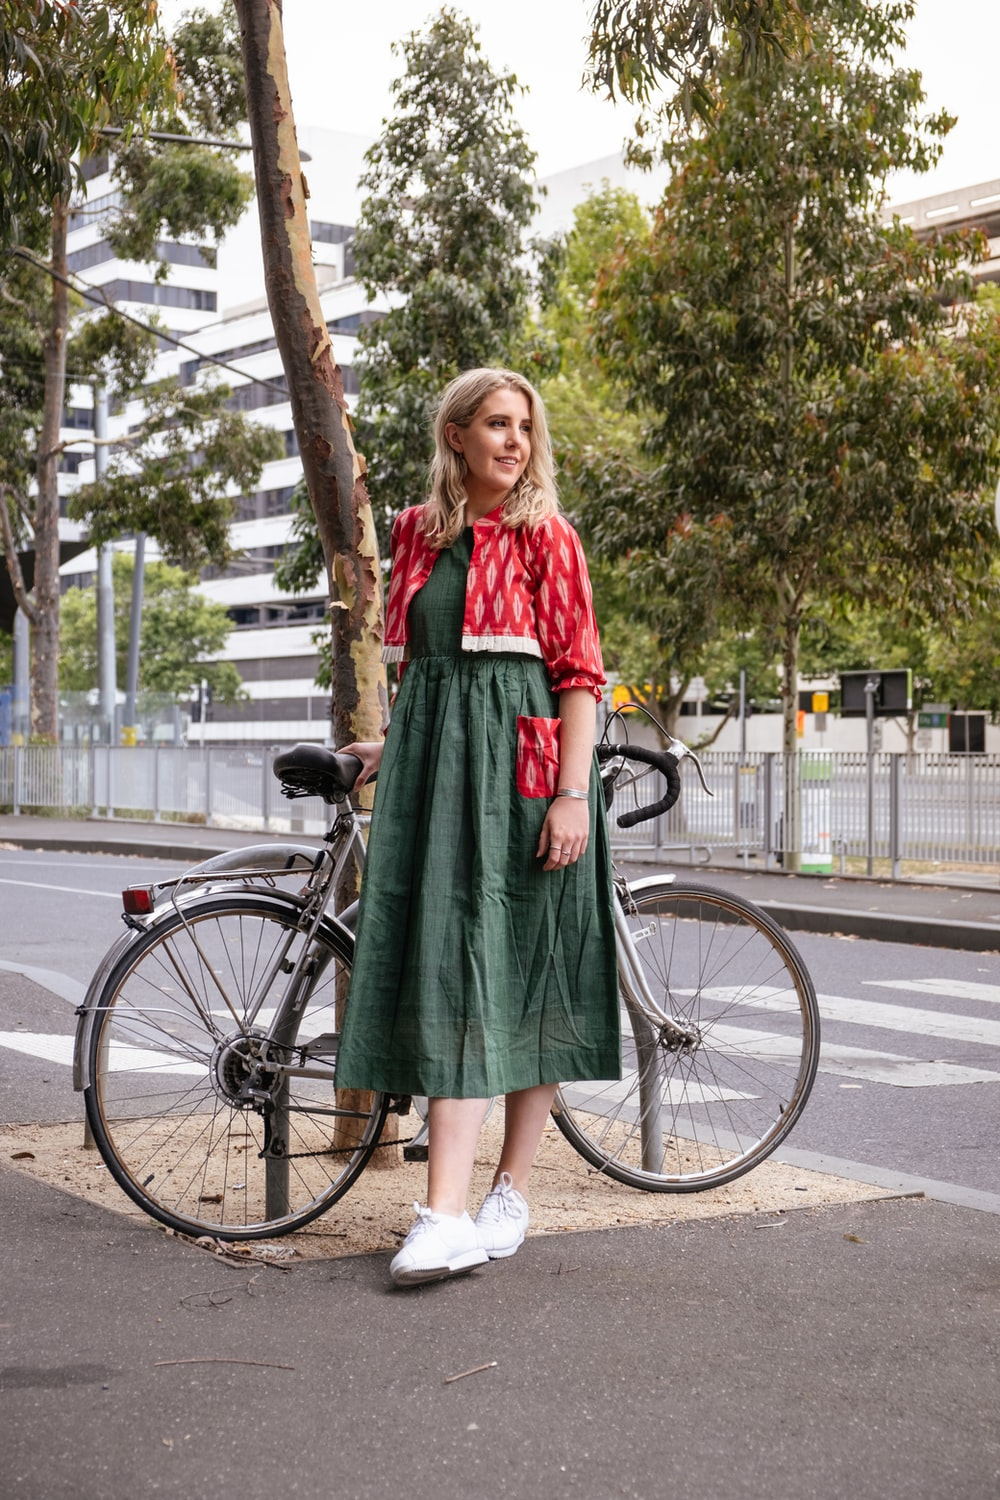 woman in red and green dress standing on road bike during daytime